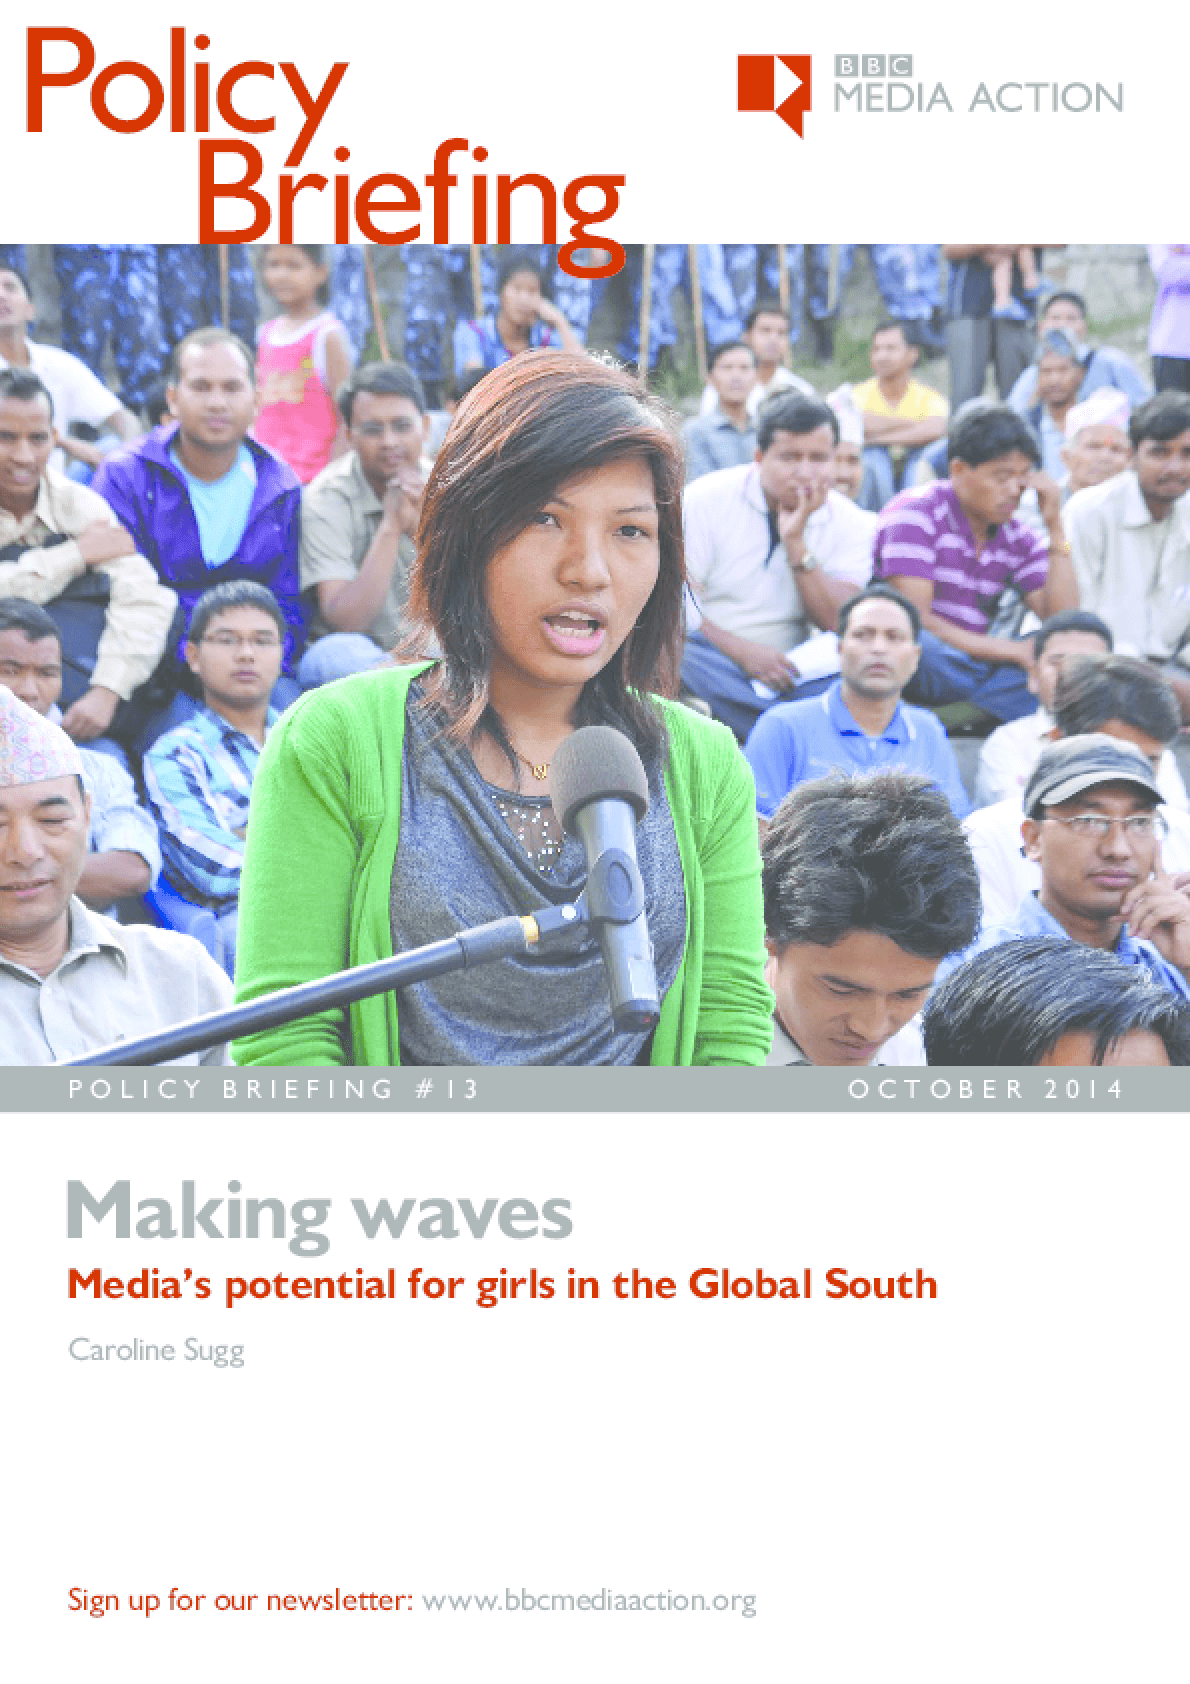 Making Waves: Media's Potential for Girls in the Global South